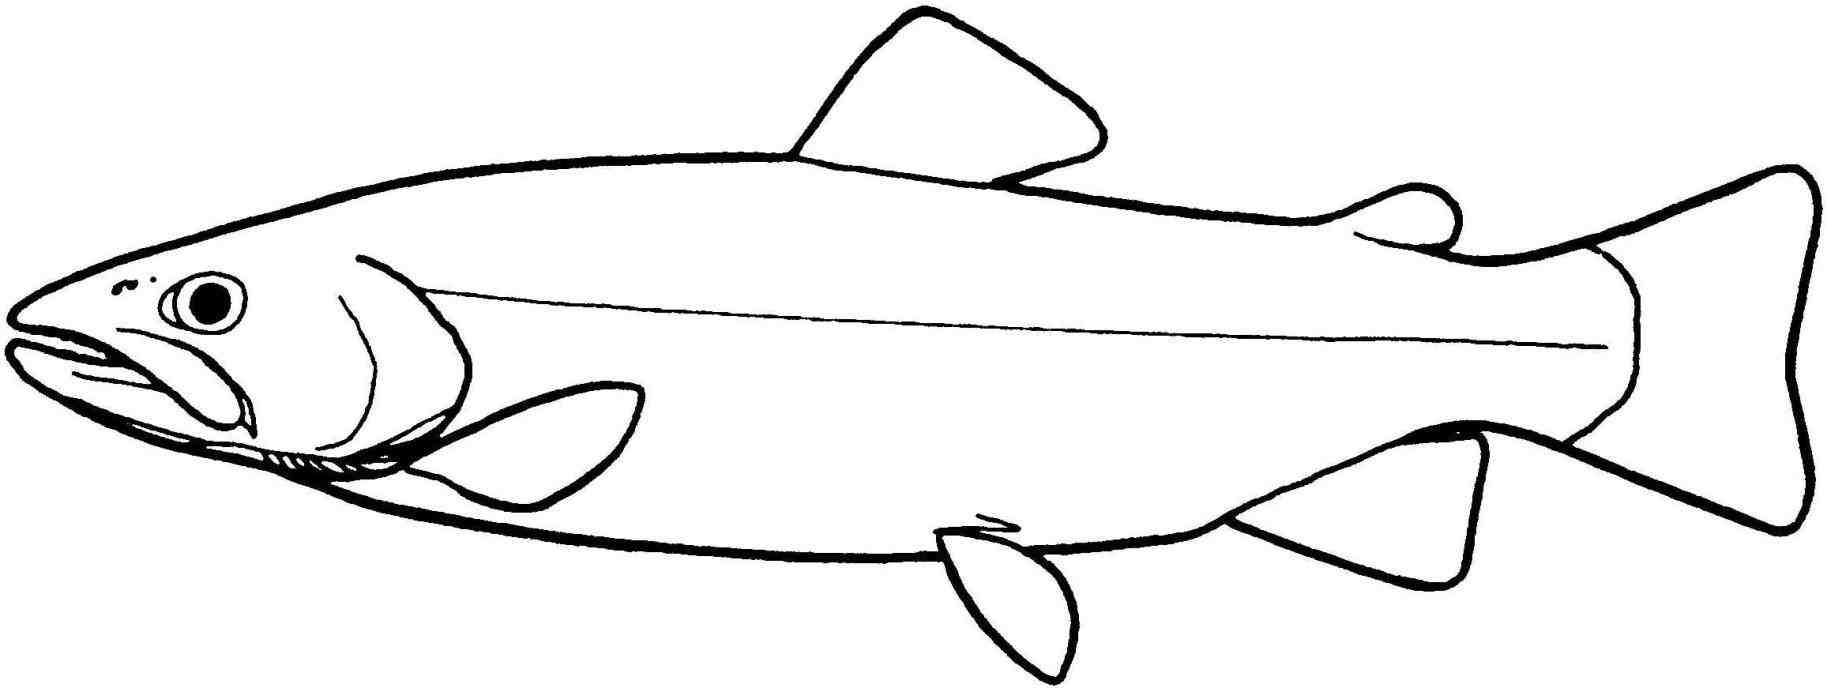 1827x688 Simple Fish Drawing Simple Fish Drawing Outline Copay.online